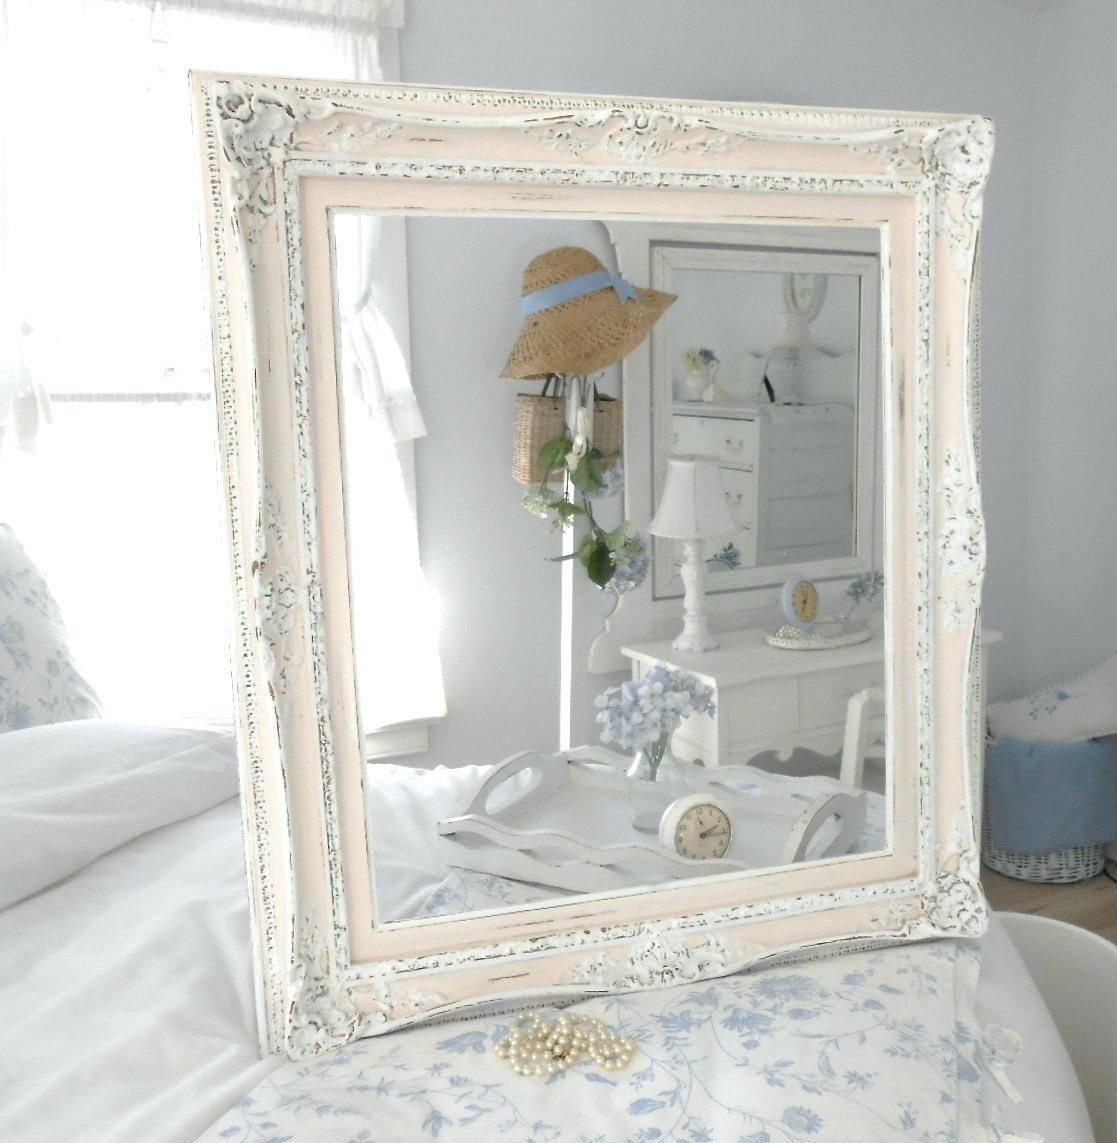 Farmhouse Window Mirror Shabby Chic Large Distressed White Wall Regarding White Shabby Chic Mirror Sale (Image 11 of 20)